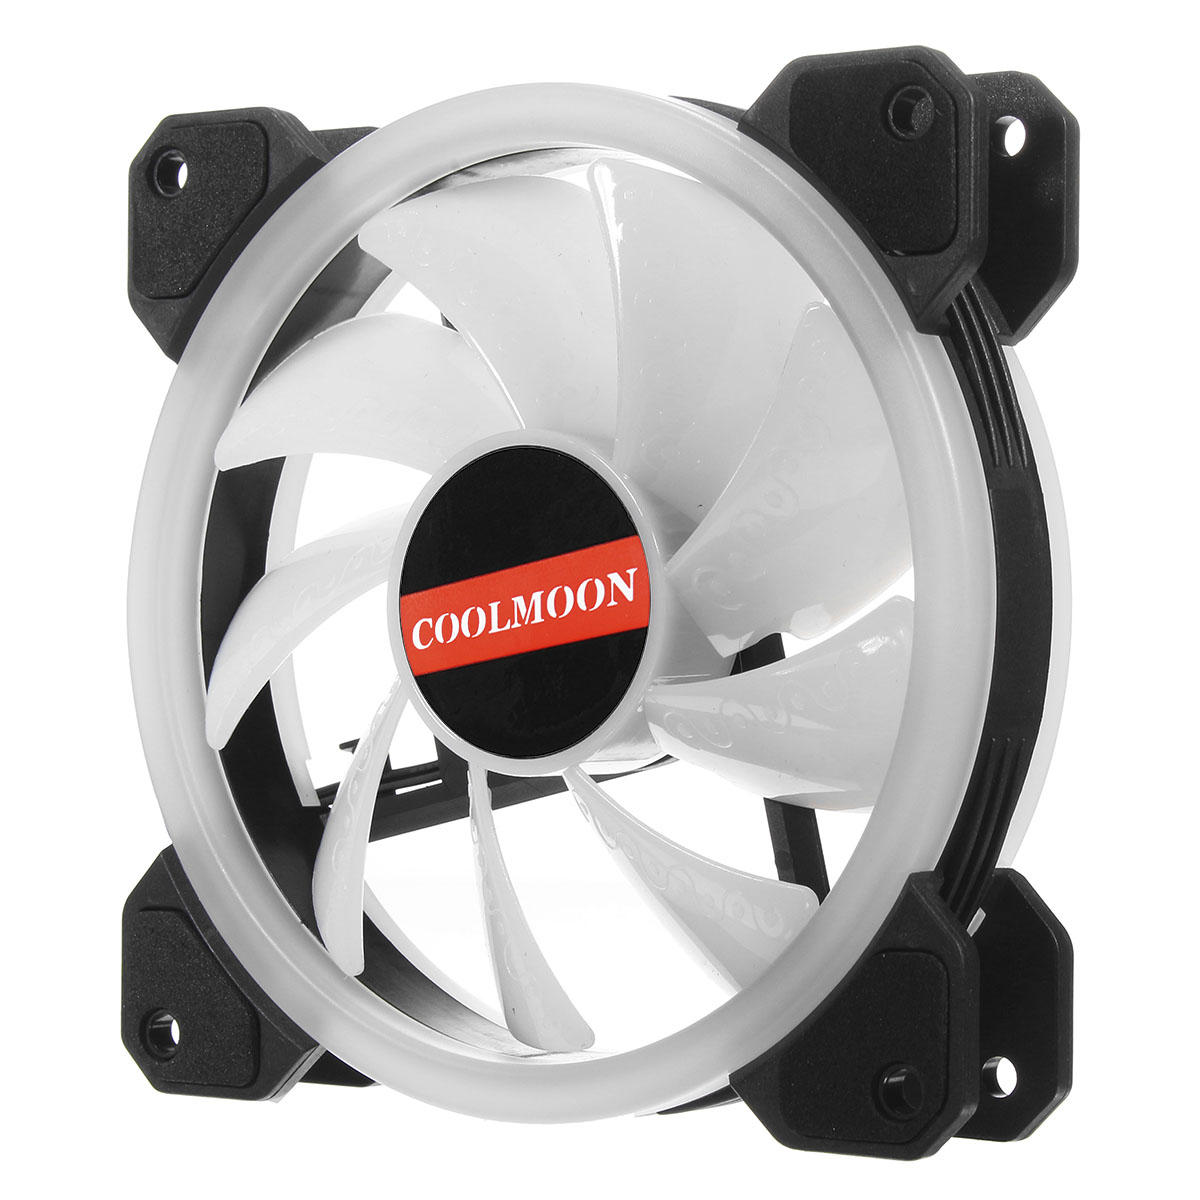 Coolmoon 6PCS 120mm RGB PC Fans 12 Monochromatic Light Adjustable CPU Cooling Fan With the Remote Control - 6